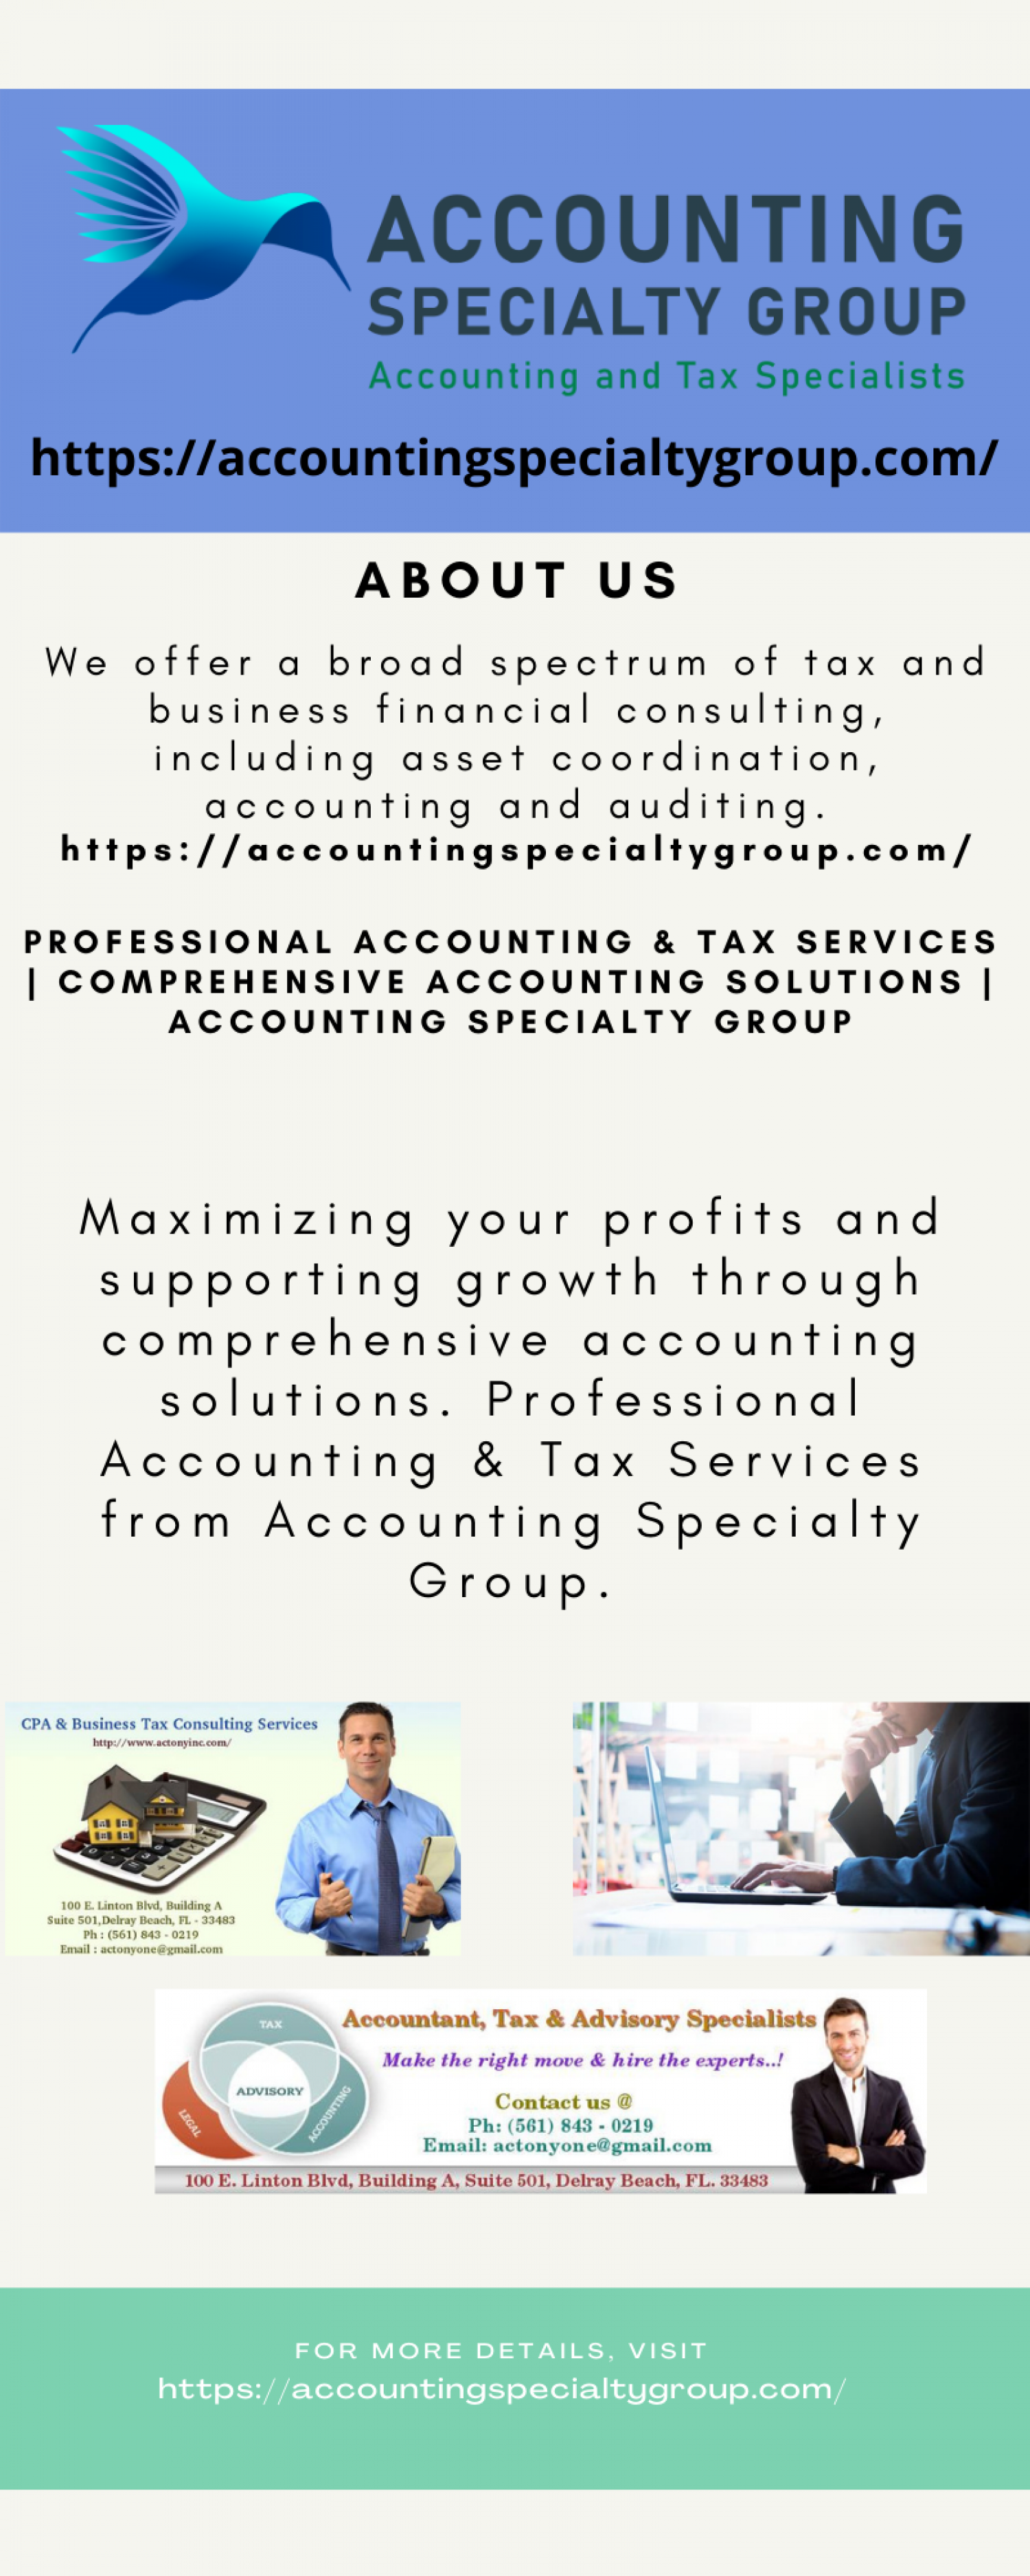 Professional Accounting & Tax Services   Comprehensive Accounting Solutions   Accounting Specialty Group Infographic